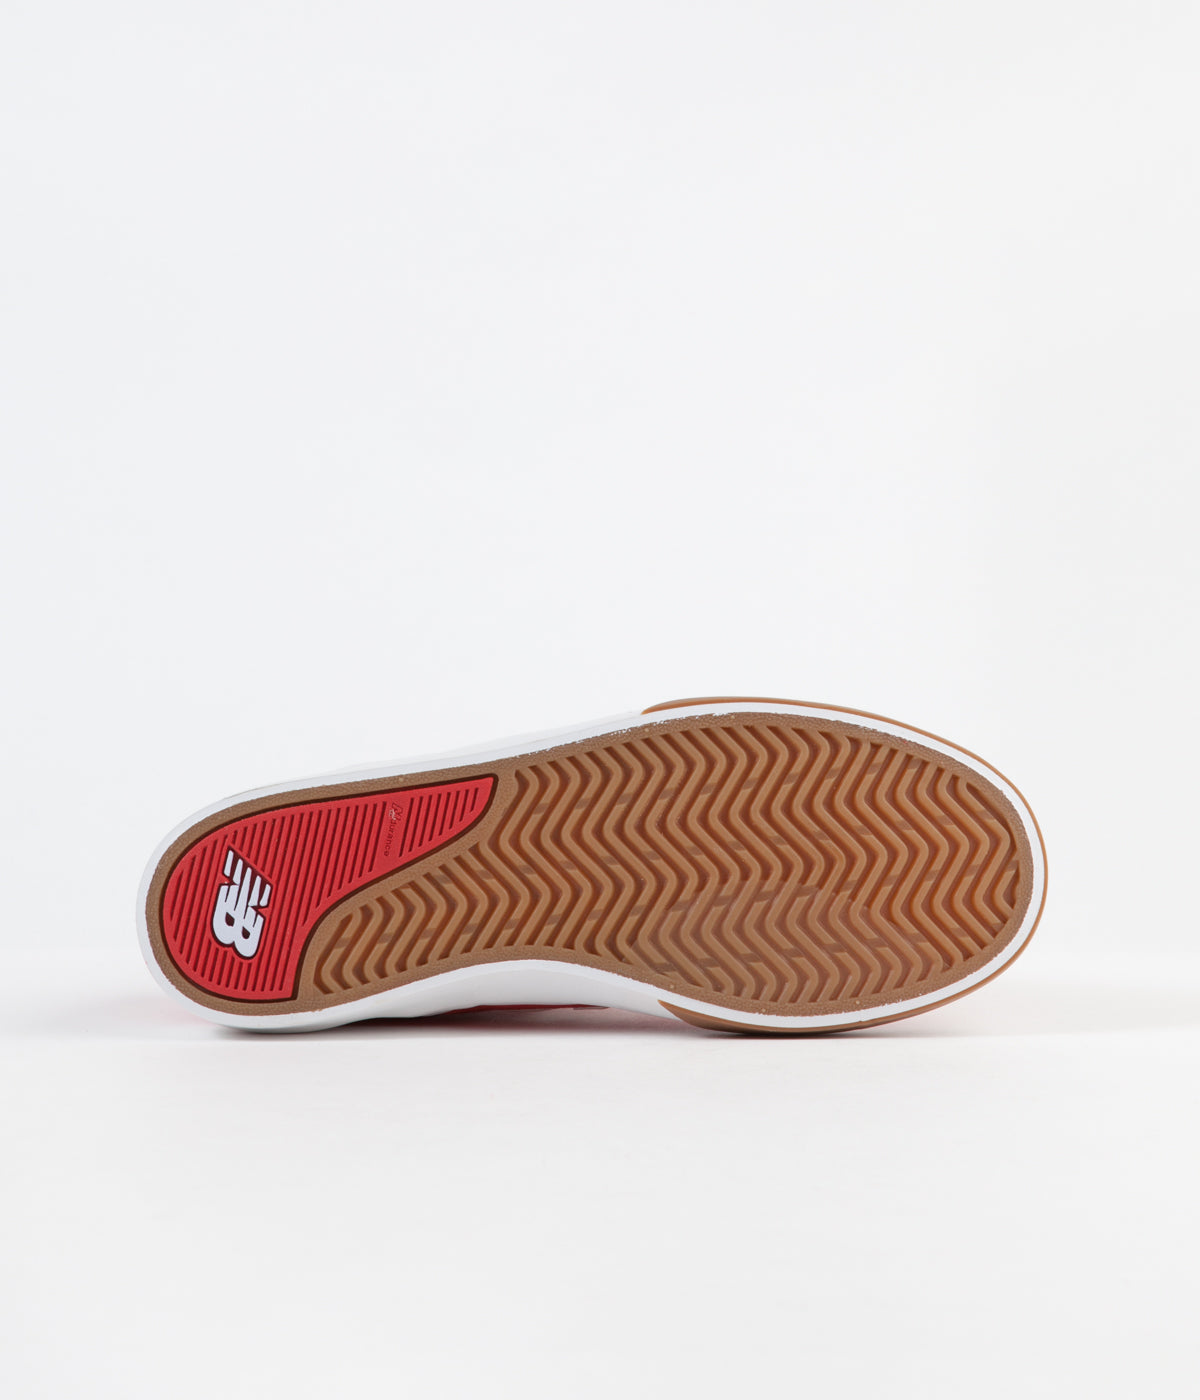 New Balance Numeric 379 Shoes - Red / White